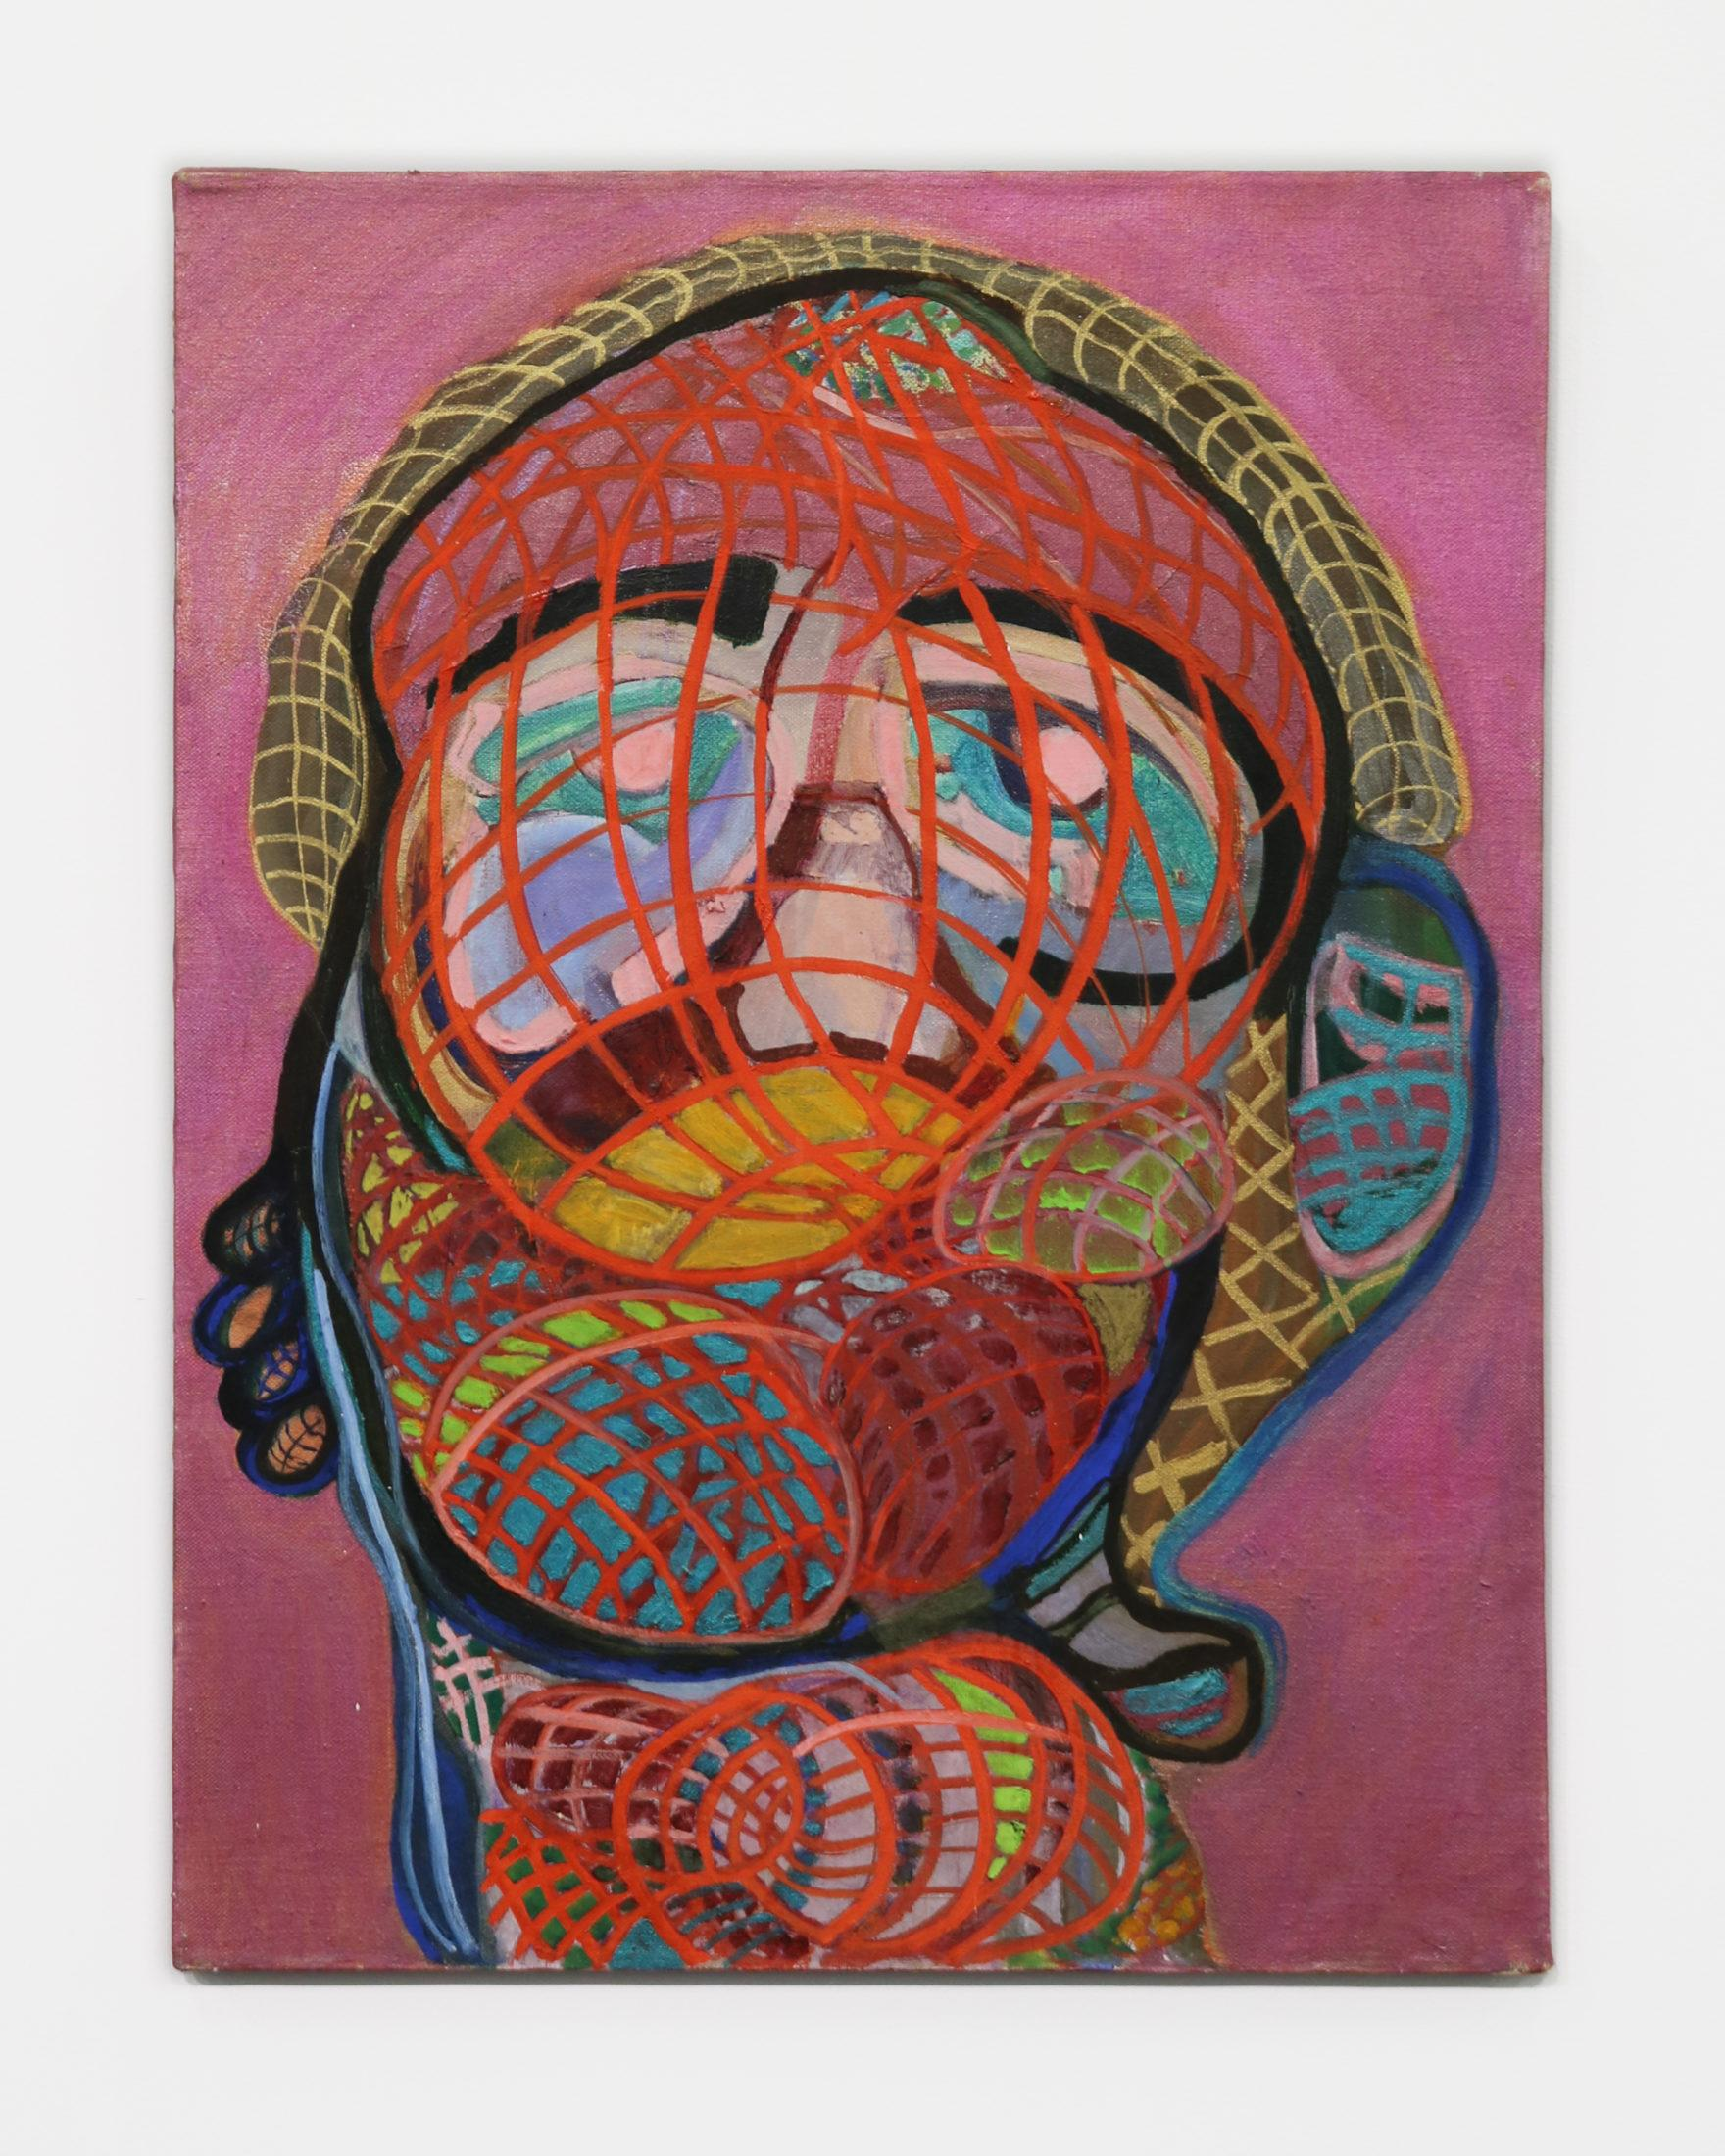 Norma Tanega Illness, 1997-2004 Oil on canvas 24 x 18 in. (A colorful masked head intertwined with woven lines that create patterns across the figure's face.)